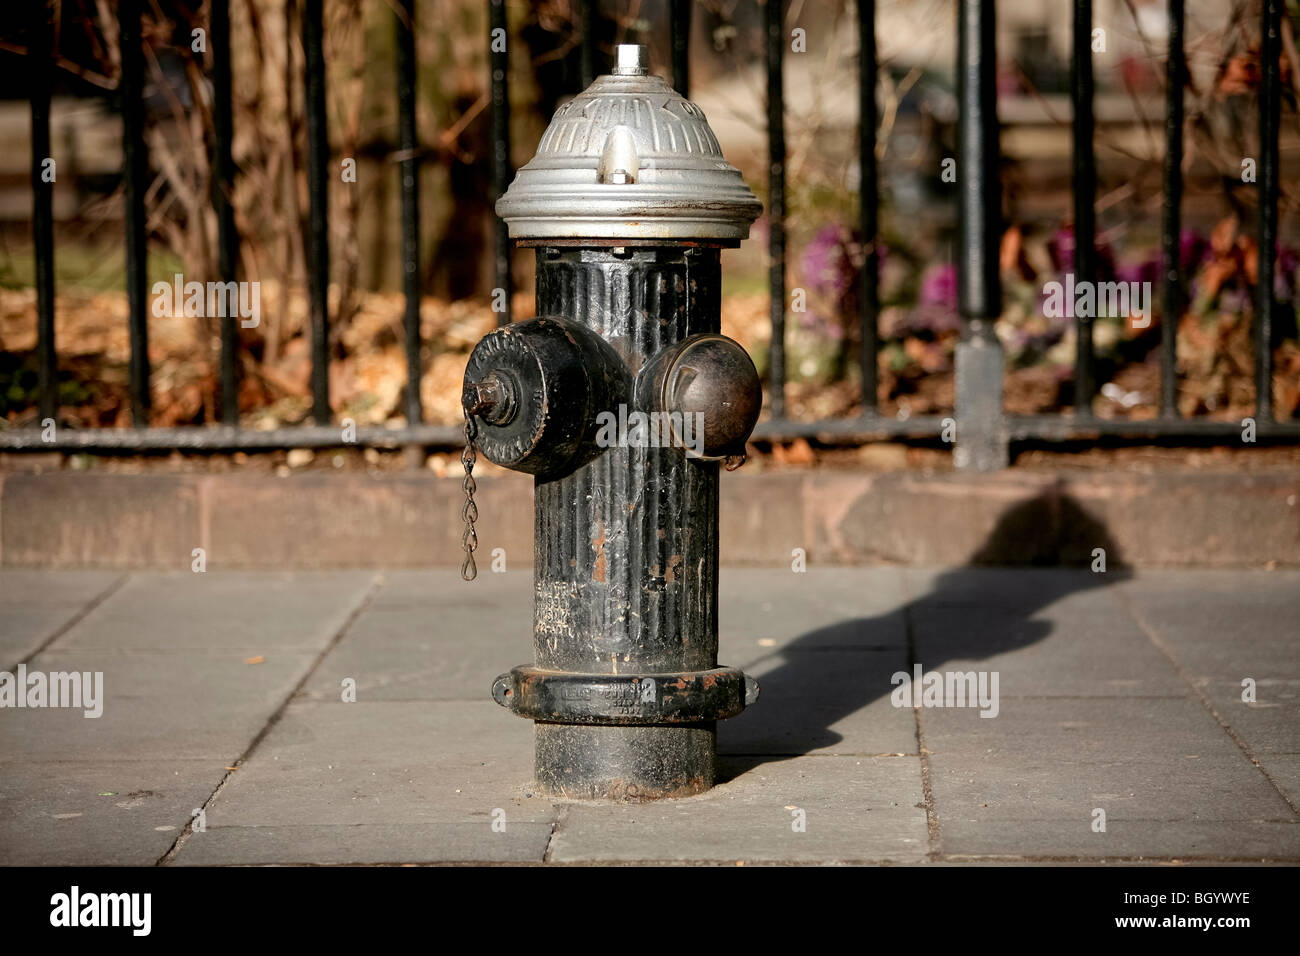 Fire hydrant or fire plug johnny pump in New York city - Stock Image